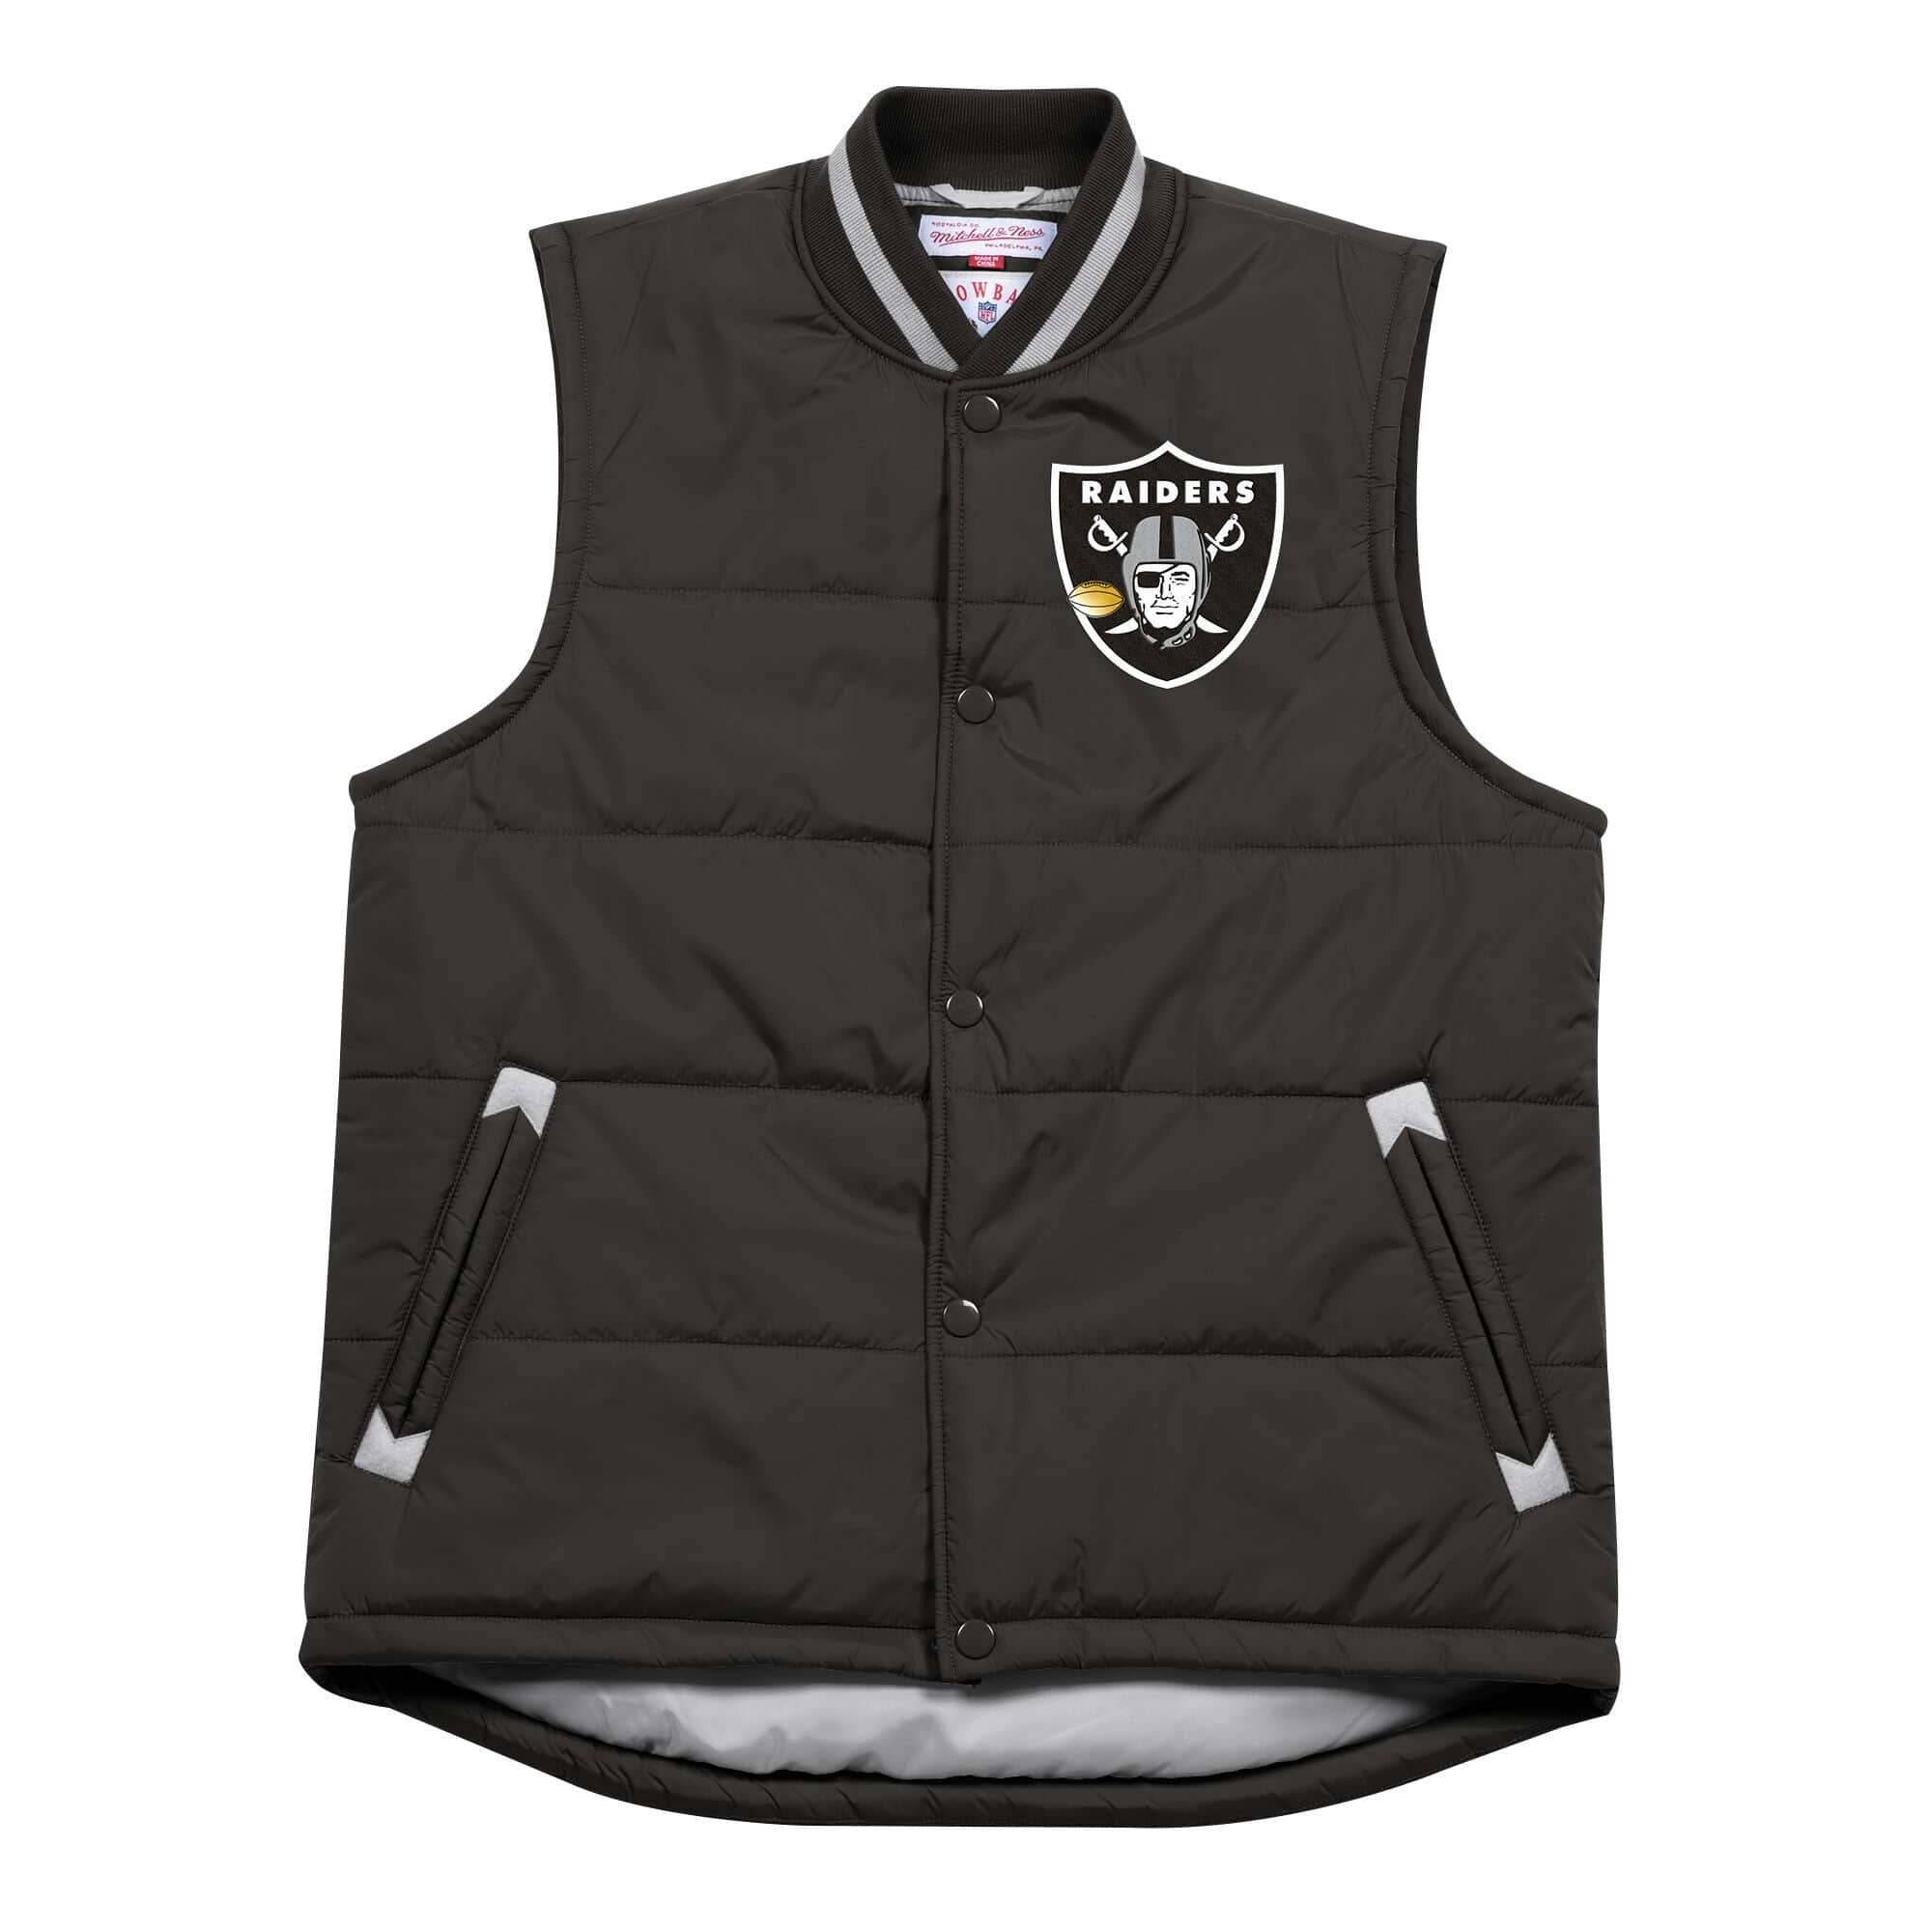 Amazing Catch Vest Oakland Raiders